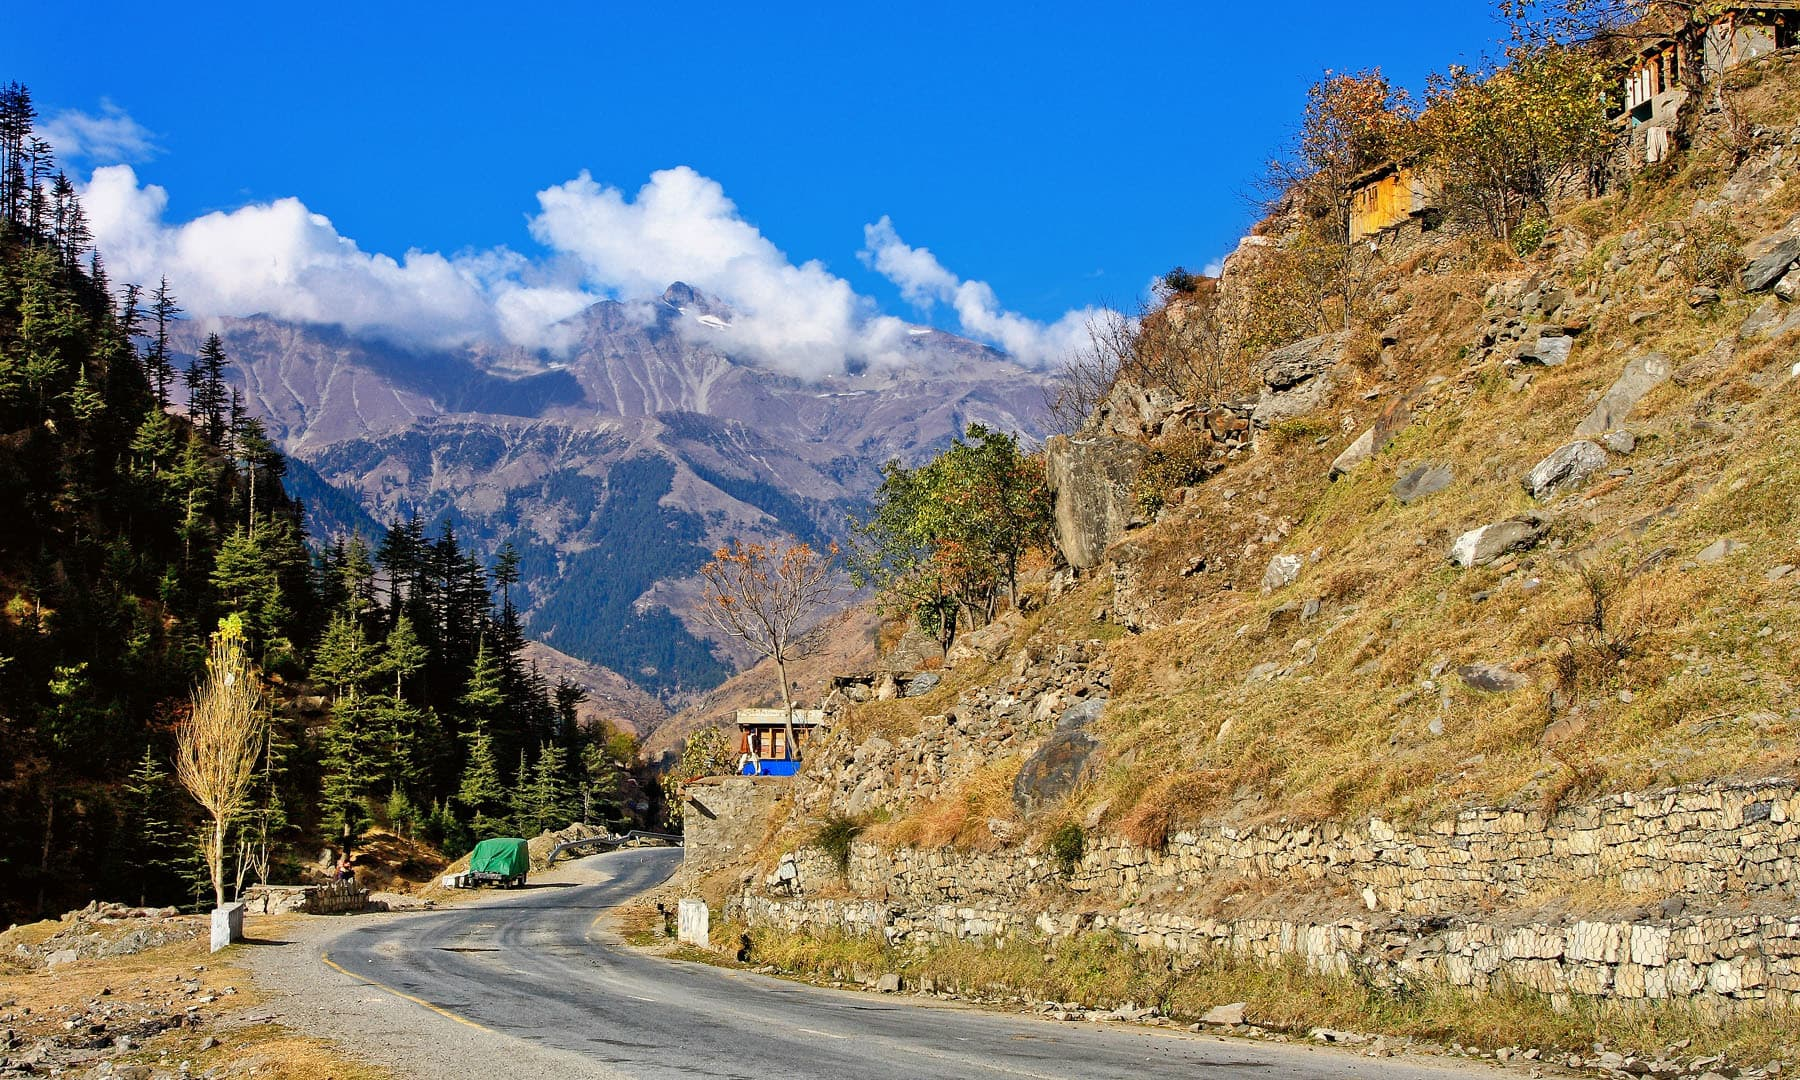 The road to Kaghan valley.